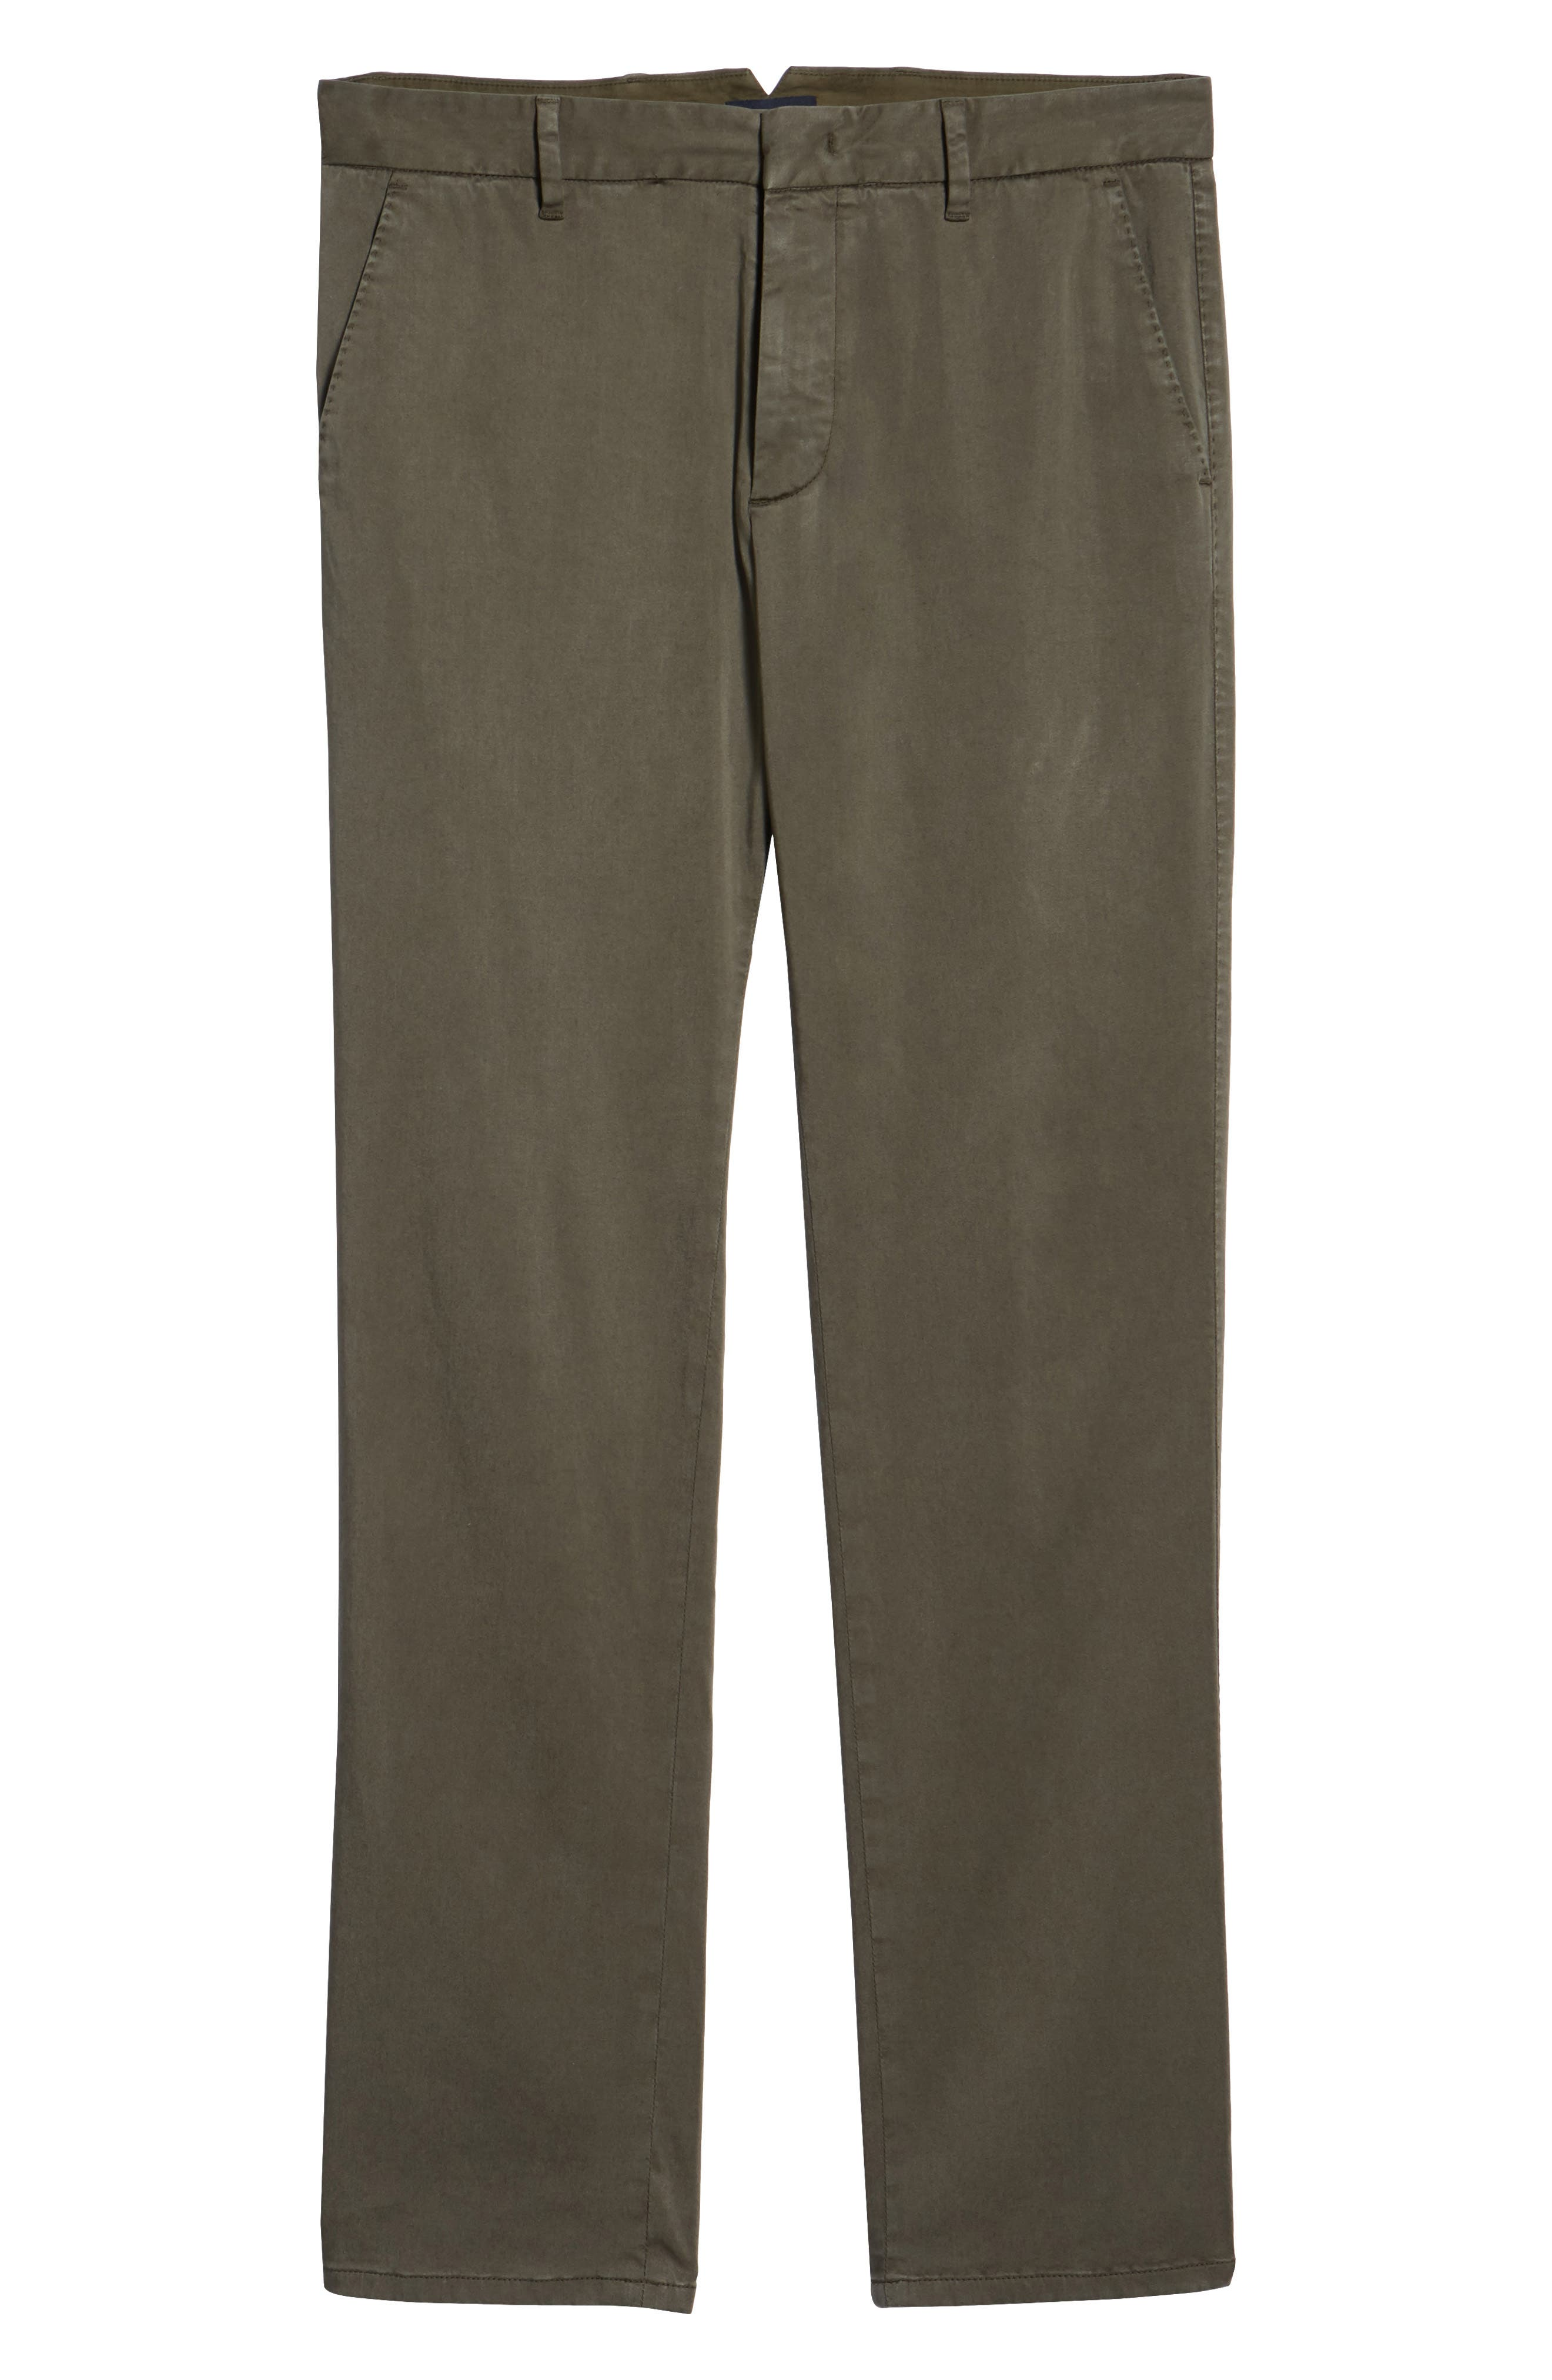 Aster Straight Fit Pants,                             Alternate thumbnail 6, color,                             OLIVE